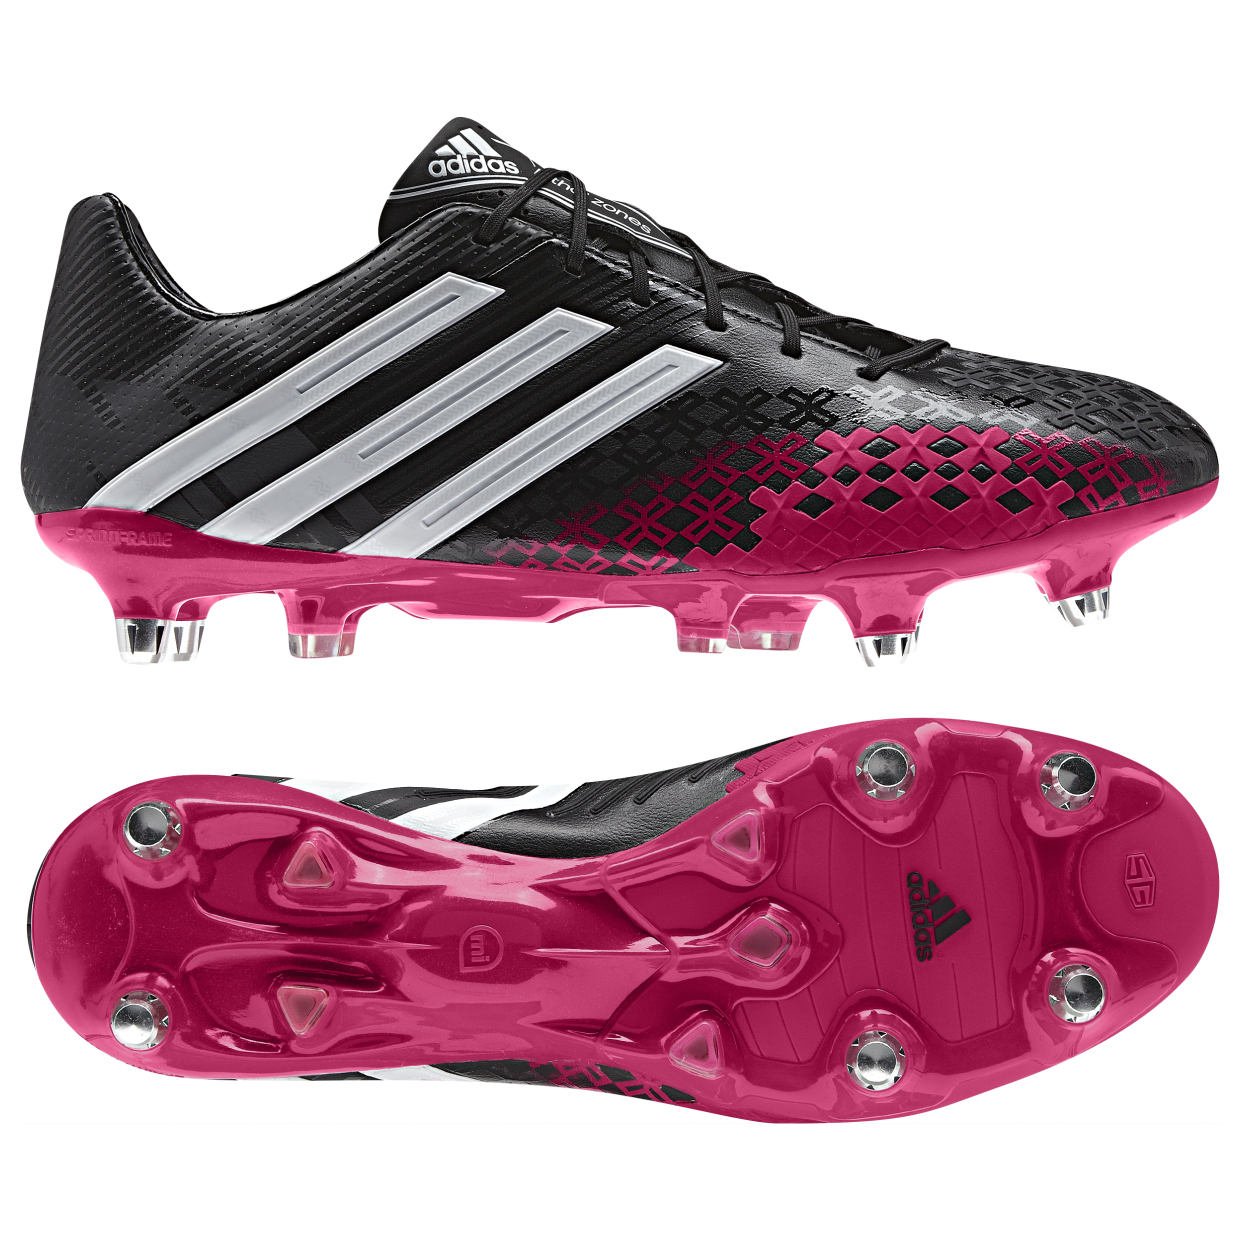 Adidas Predator LZ XTRX Soft Ground Football Boots Black